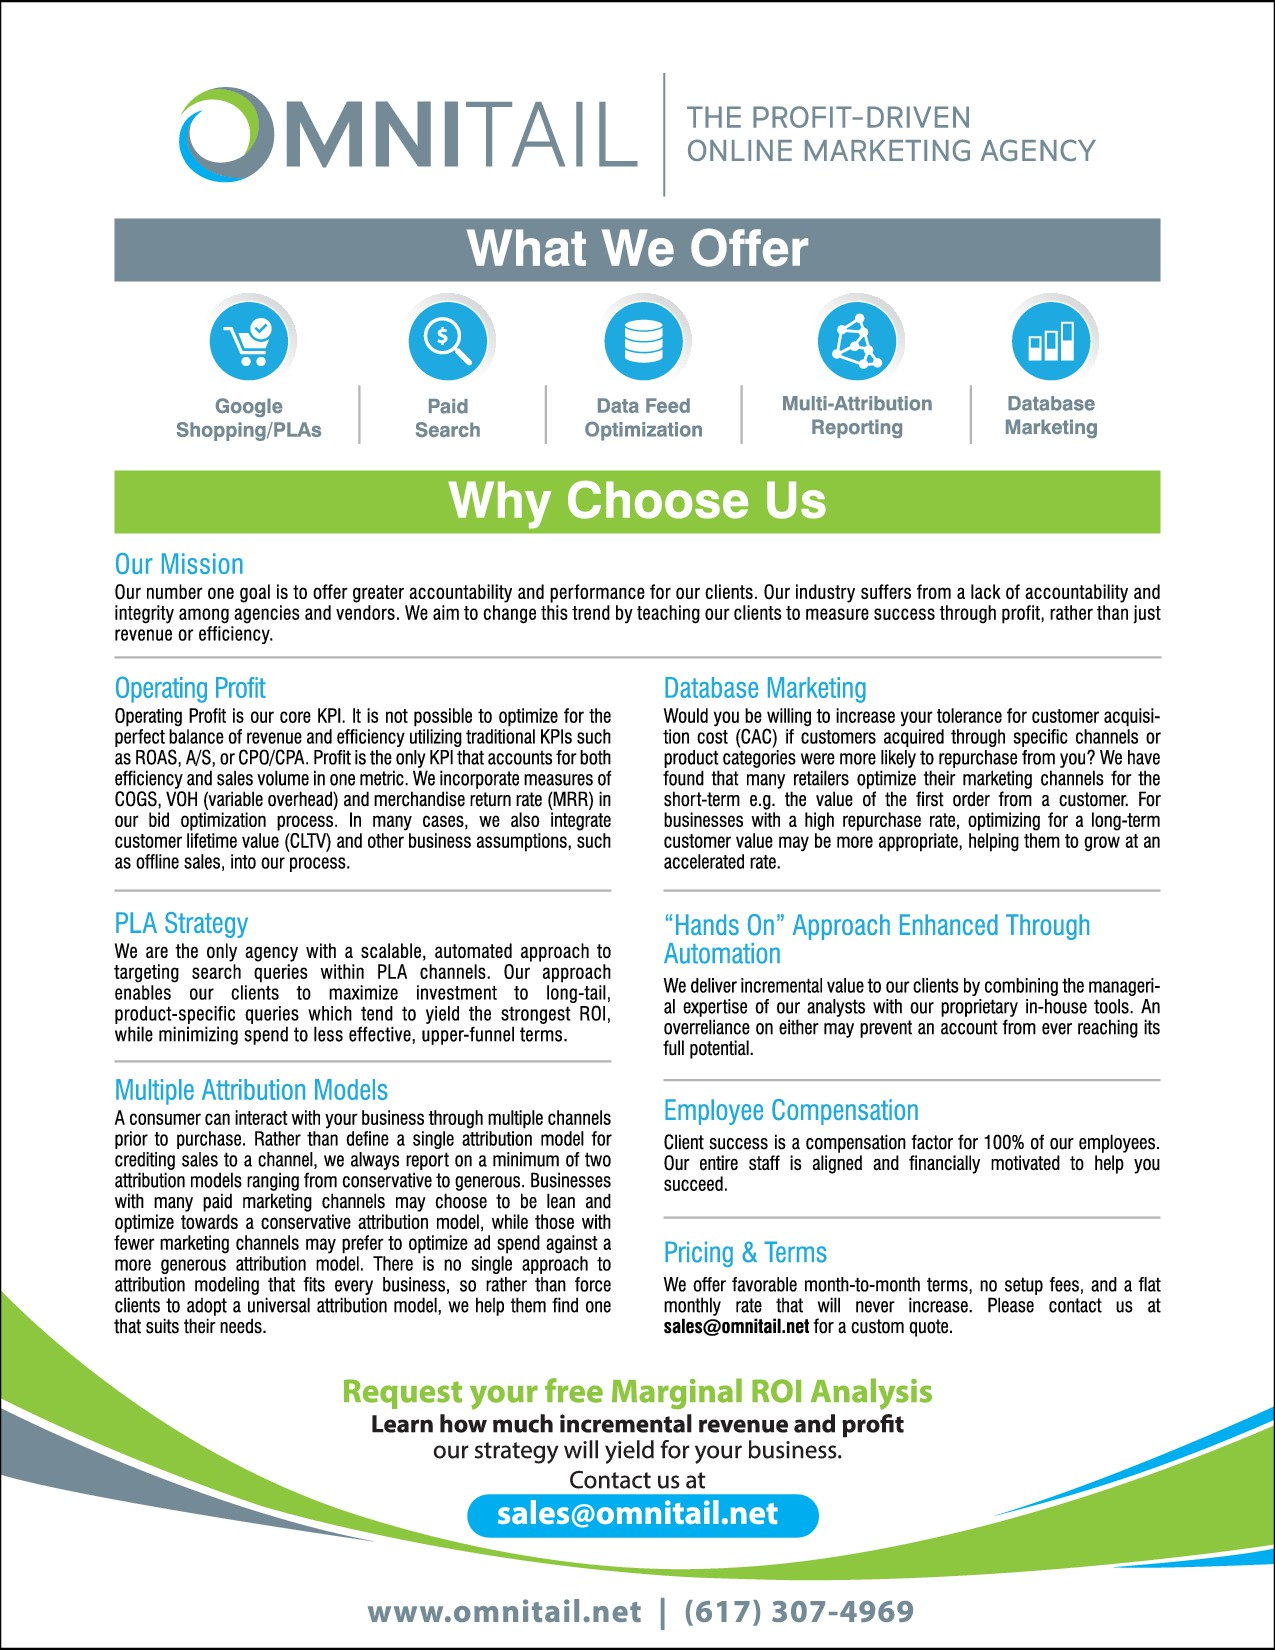 EASY - format our paper on 1-2 pages. Design reference included.